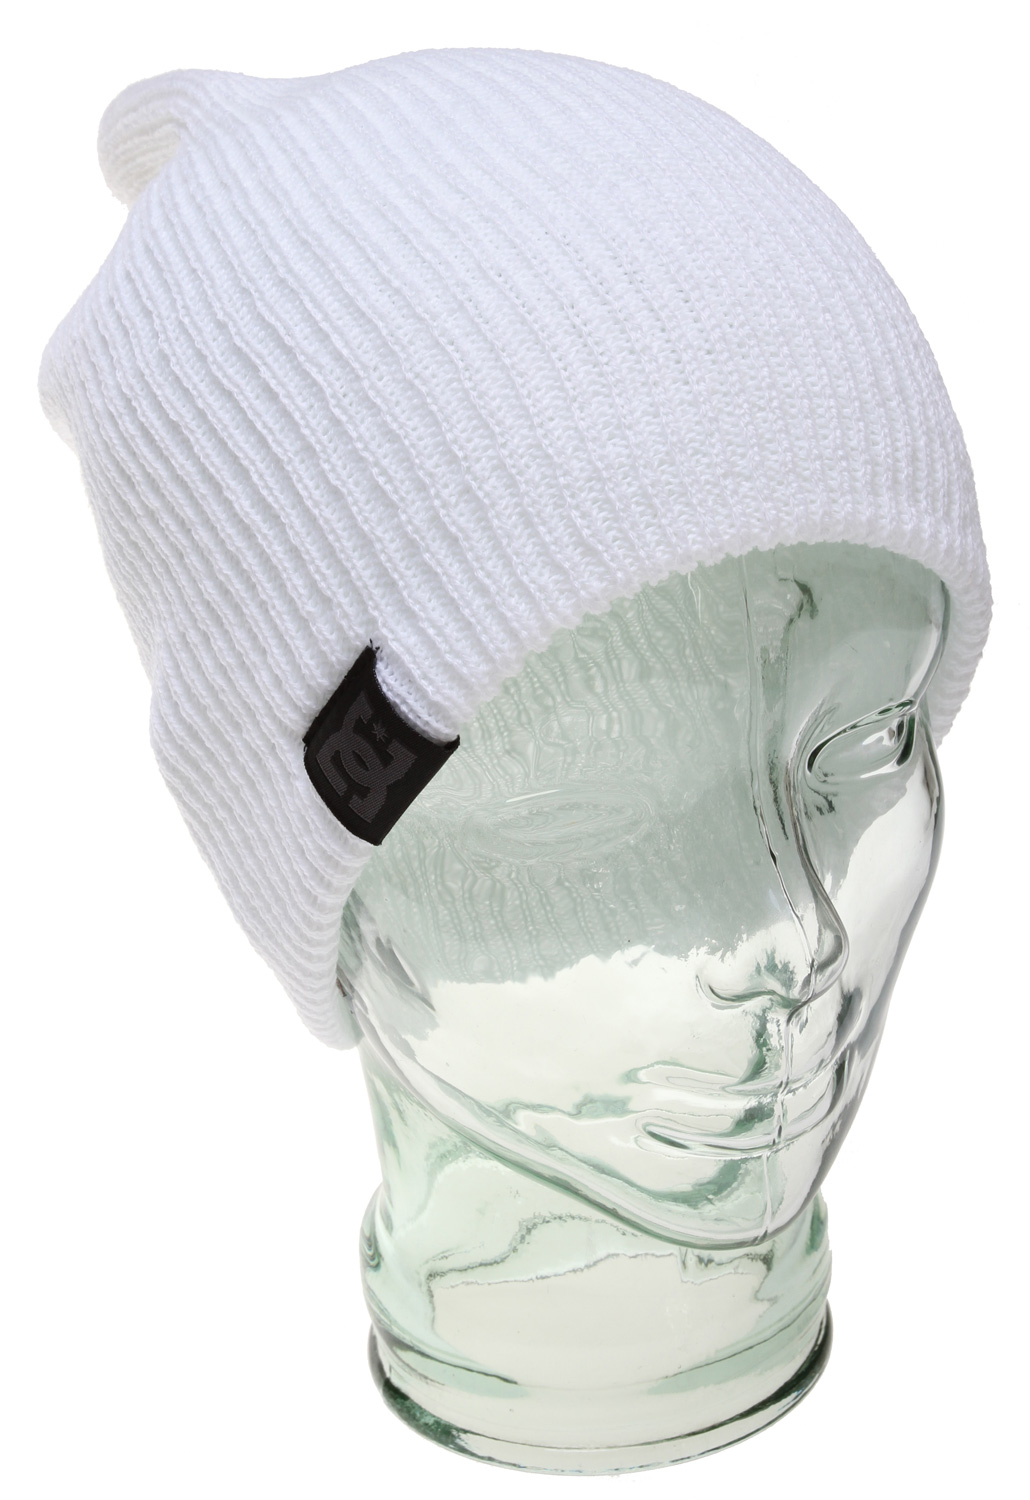 Key Features of the DC Yepa Beanie: Slouch fit beanie 100% acrylic - $11.95